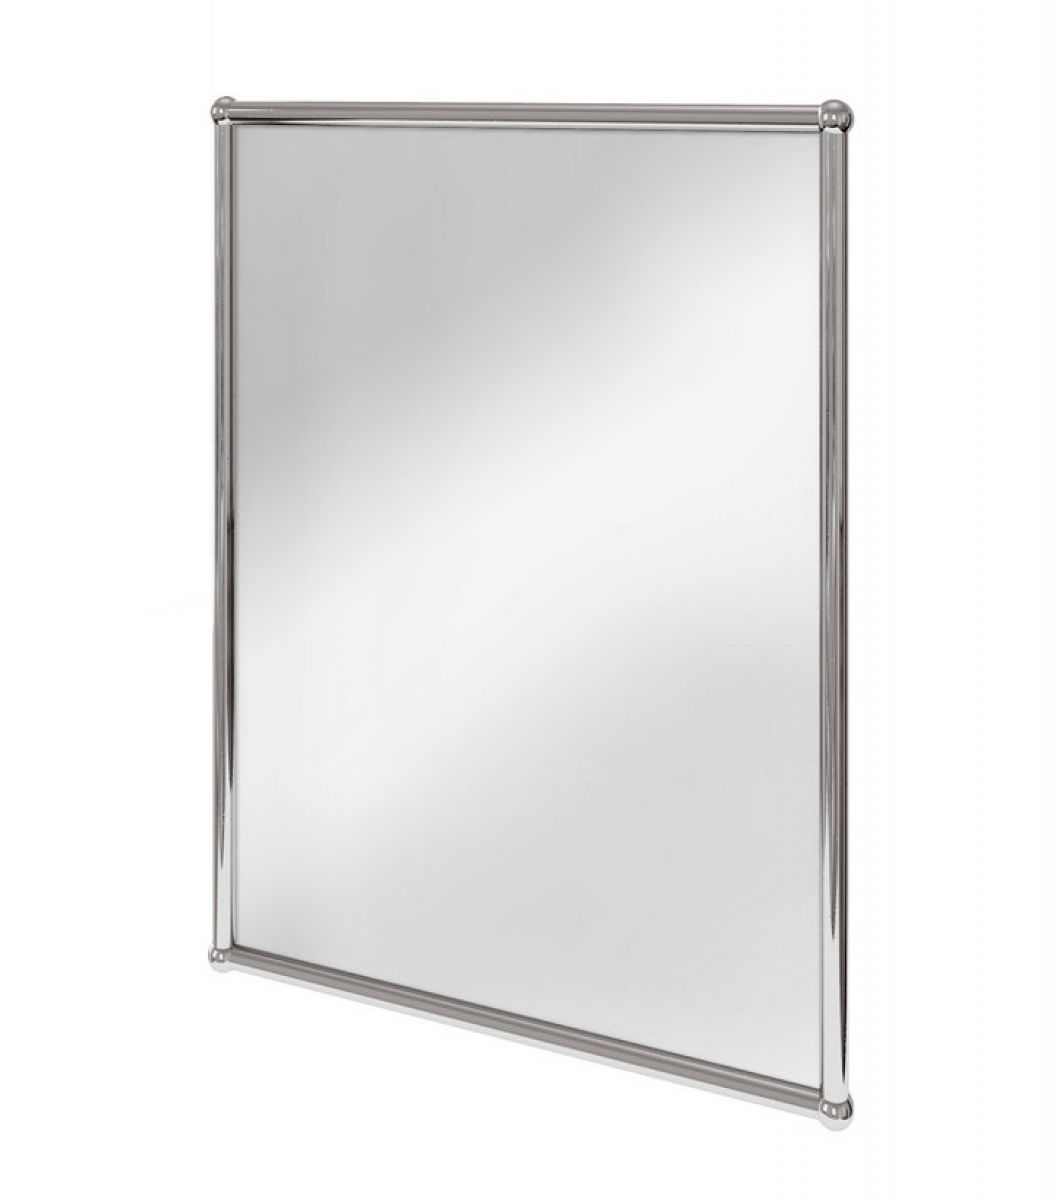 Burlington Rectangular Framed Mirror Uk Bathrooms With Regard To Chrome Framed Mirror (Image 5 of 15)